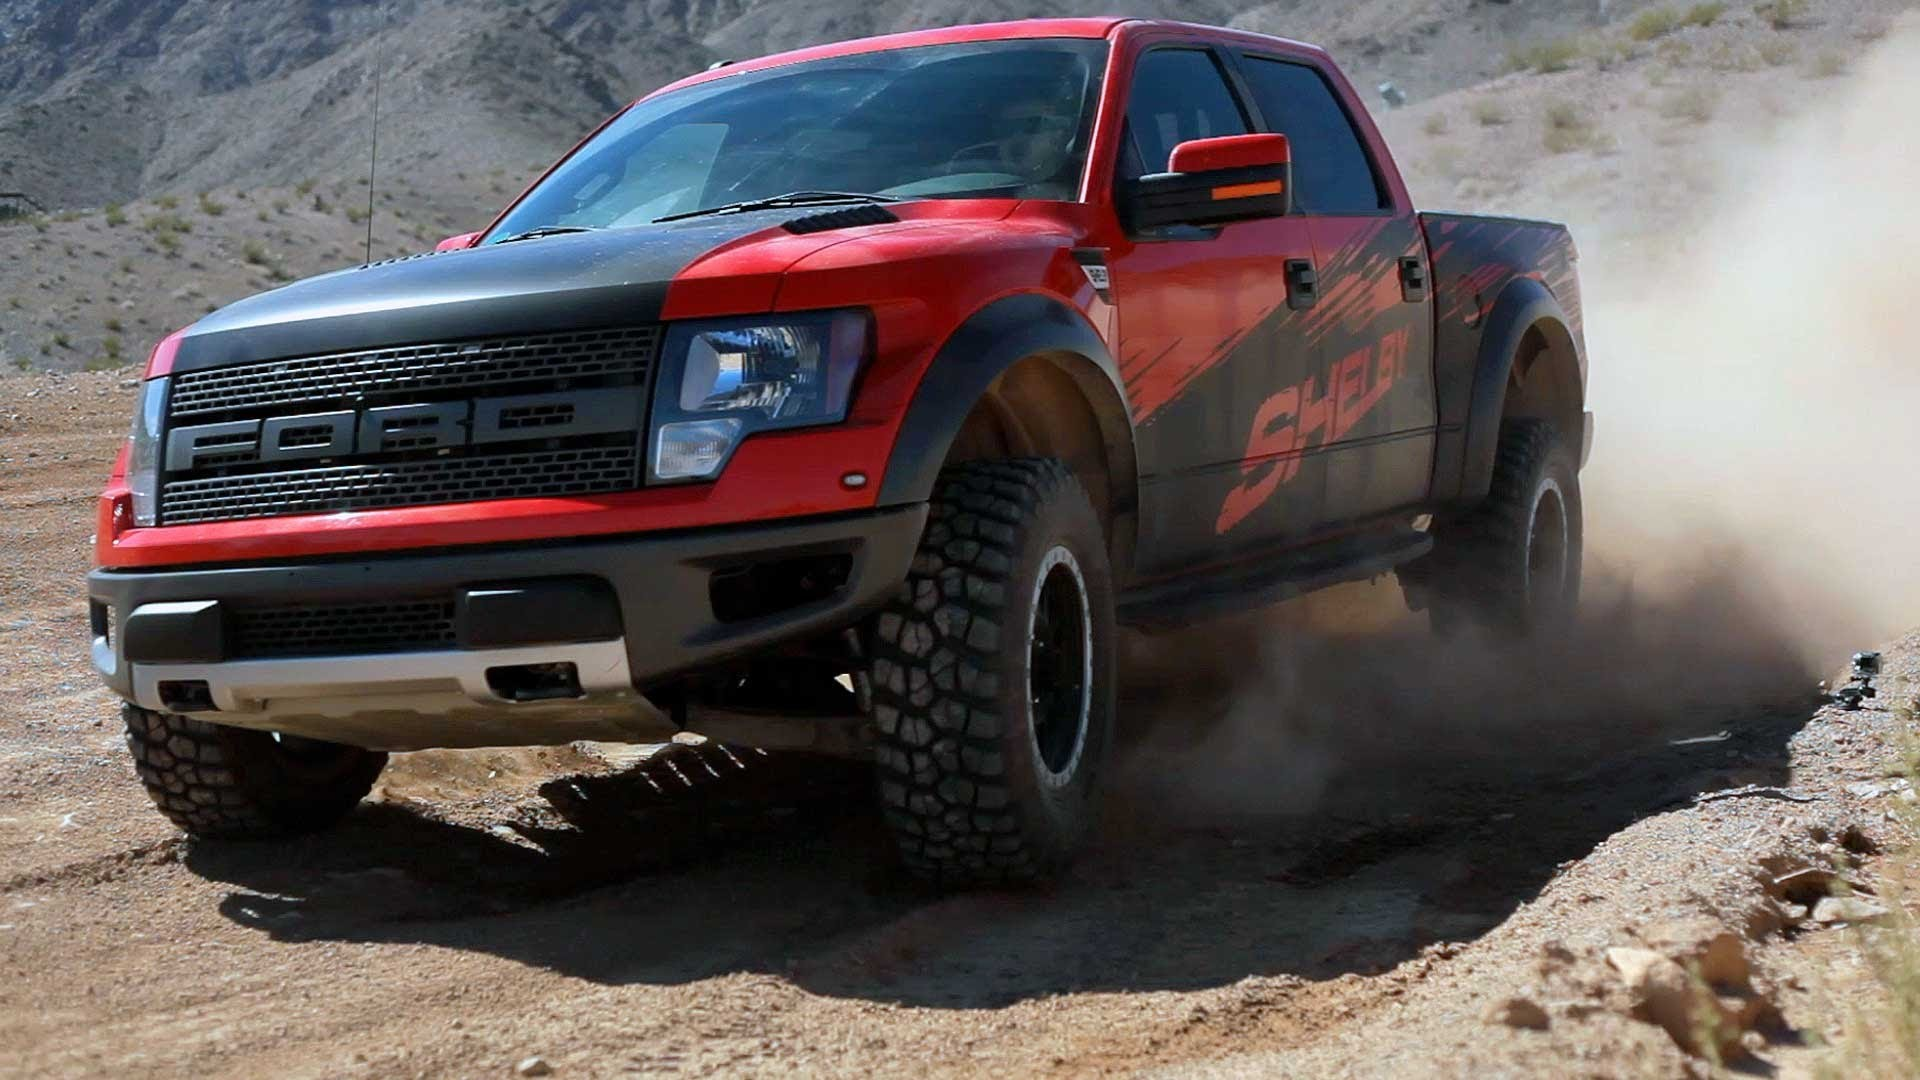 2015 Ford Raptor Wallpapers for Laptops